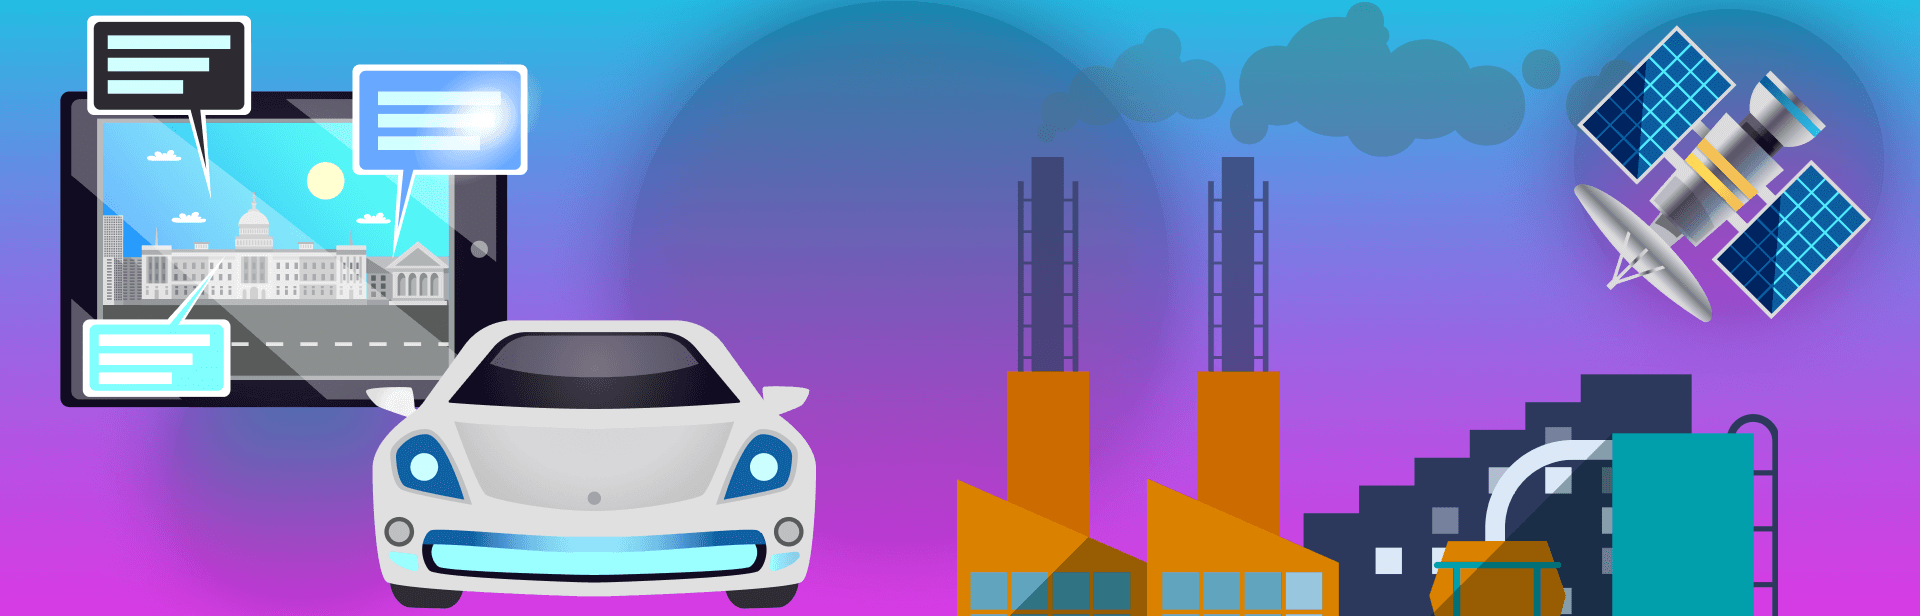 VR in Automotive Industry